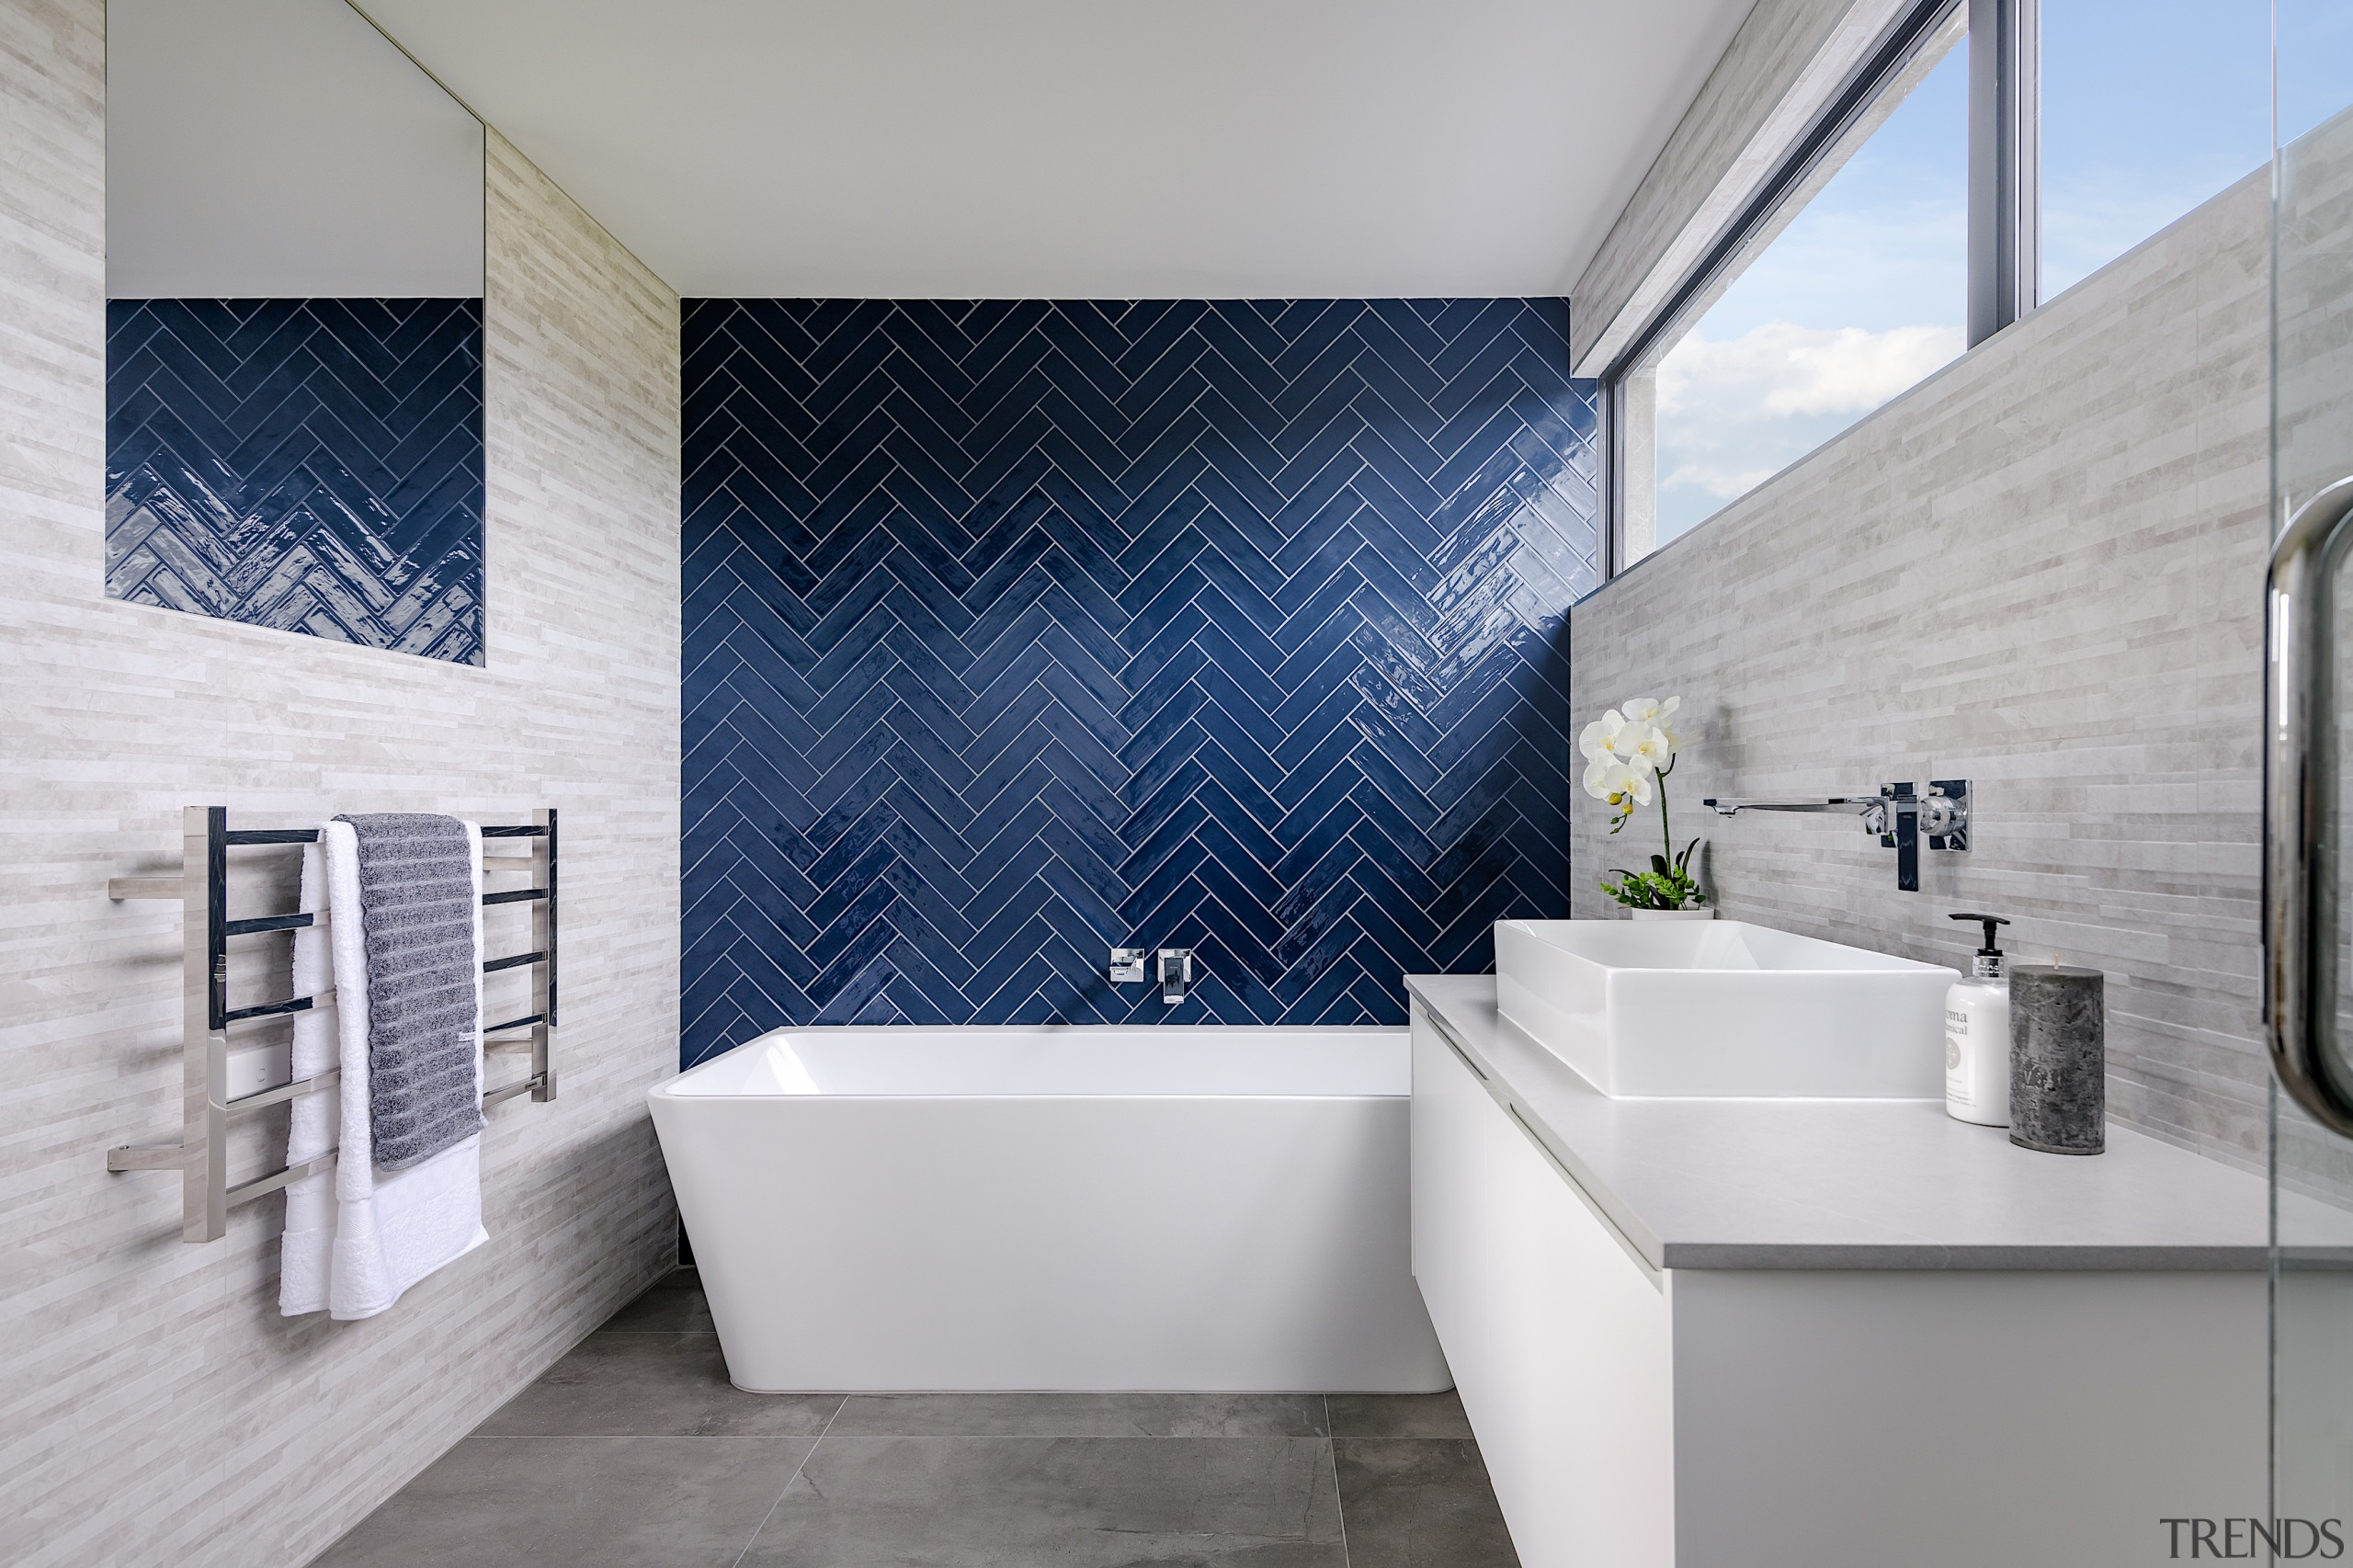 A bold feature wall of blue herringbone tiles